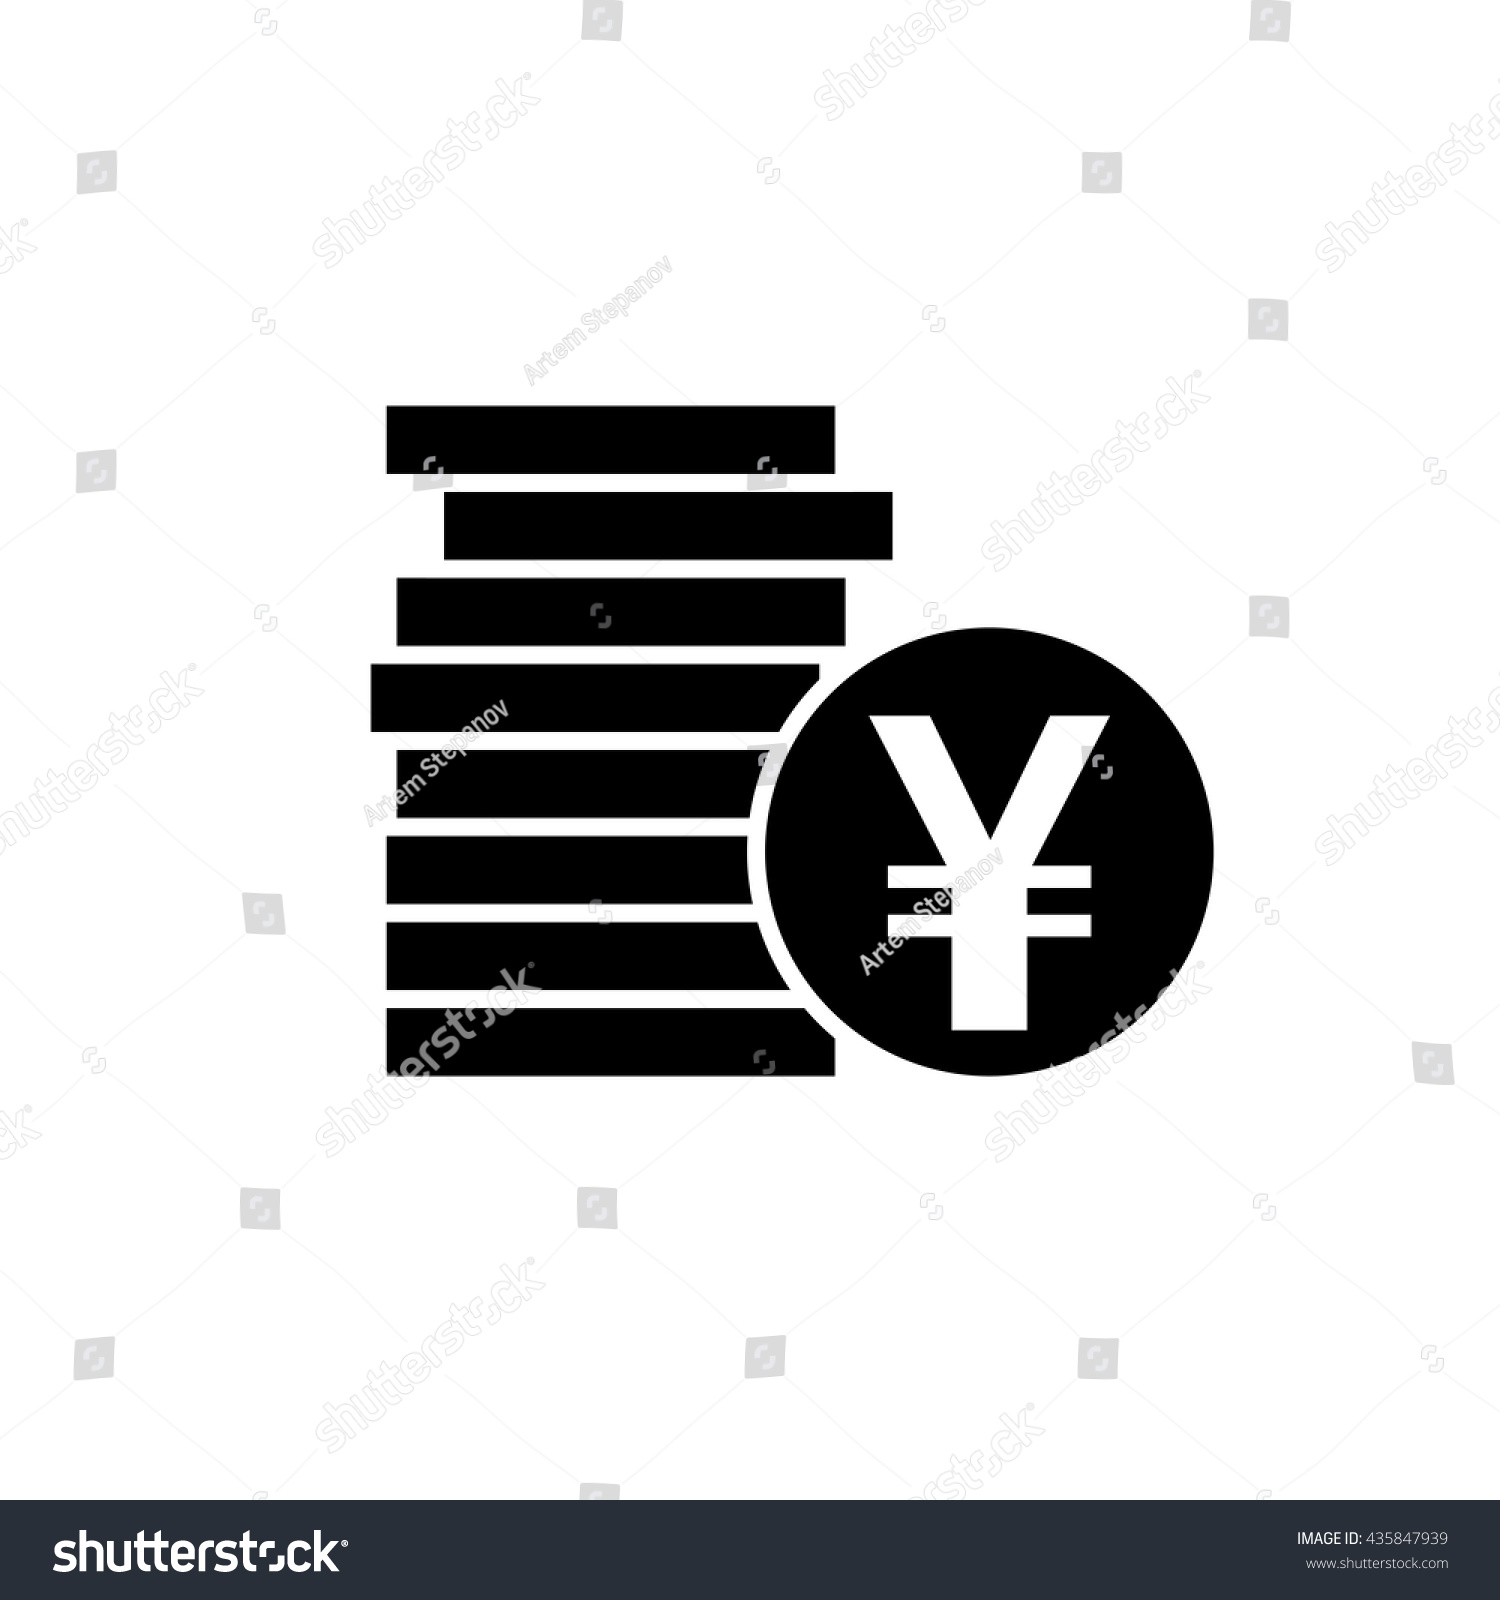 Japanese yen chinese yuan currency symbol stock vector 435847939 japanese yen or chinese yuan currency symbol flat icon for apps and websites biocorpaavc